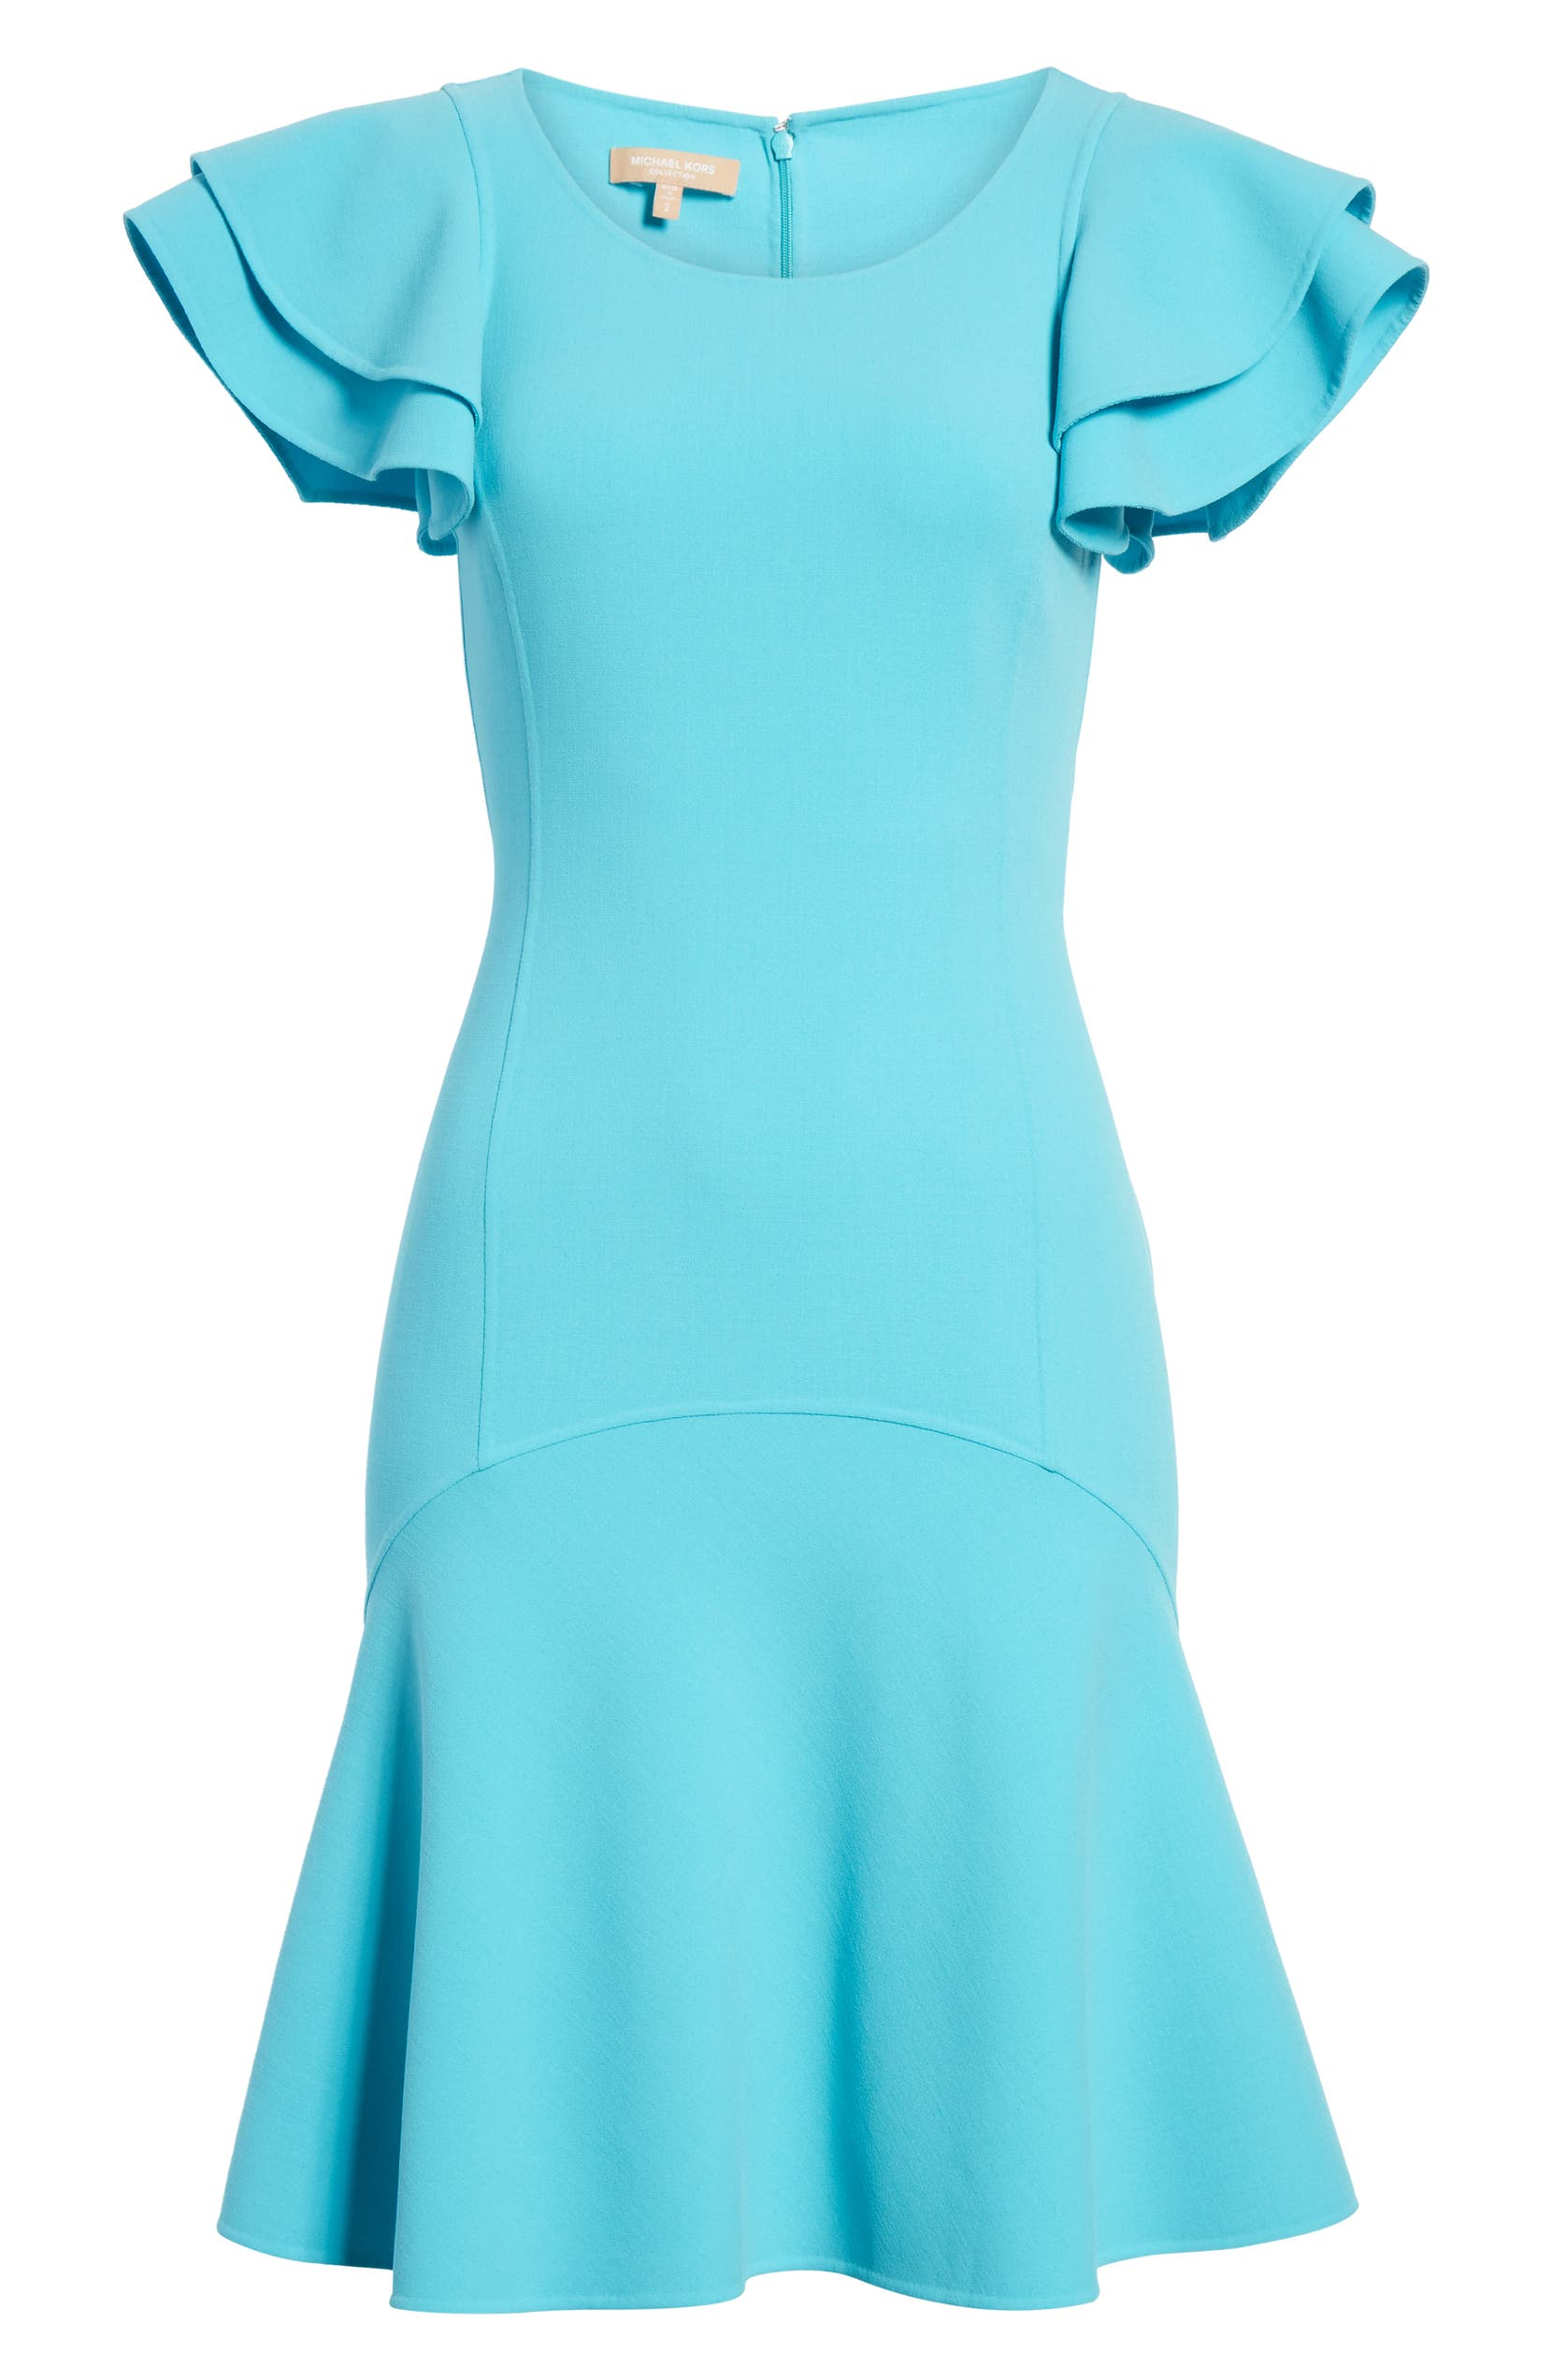 98953b1f1c0f7 Michael Kors Layered Flutter Sleeve Stretch Wool Crepe Dress | Nordstrom